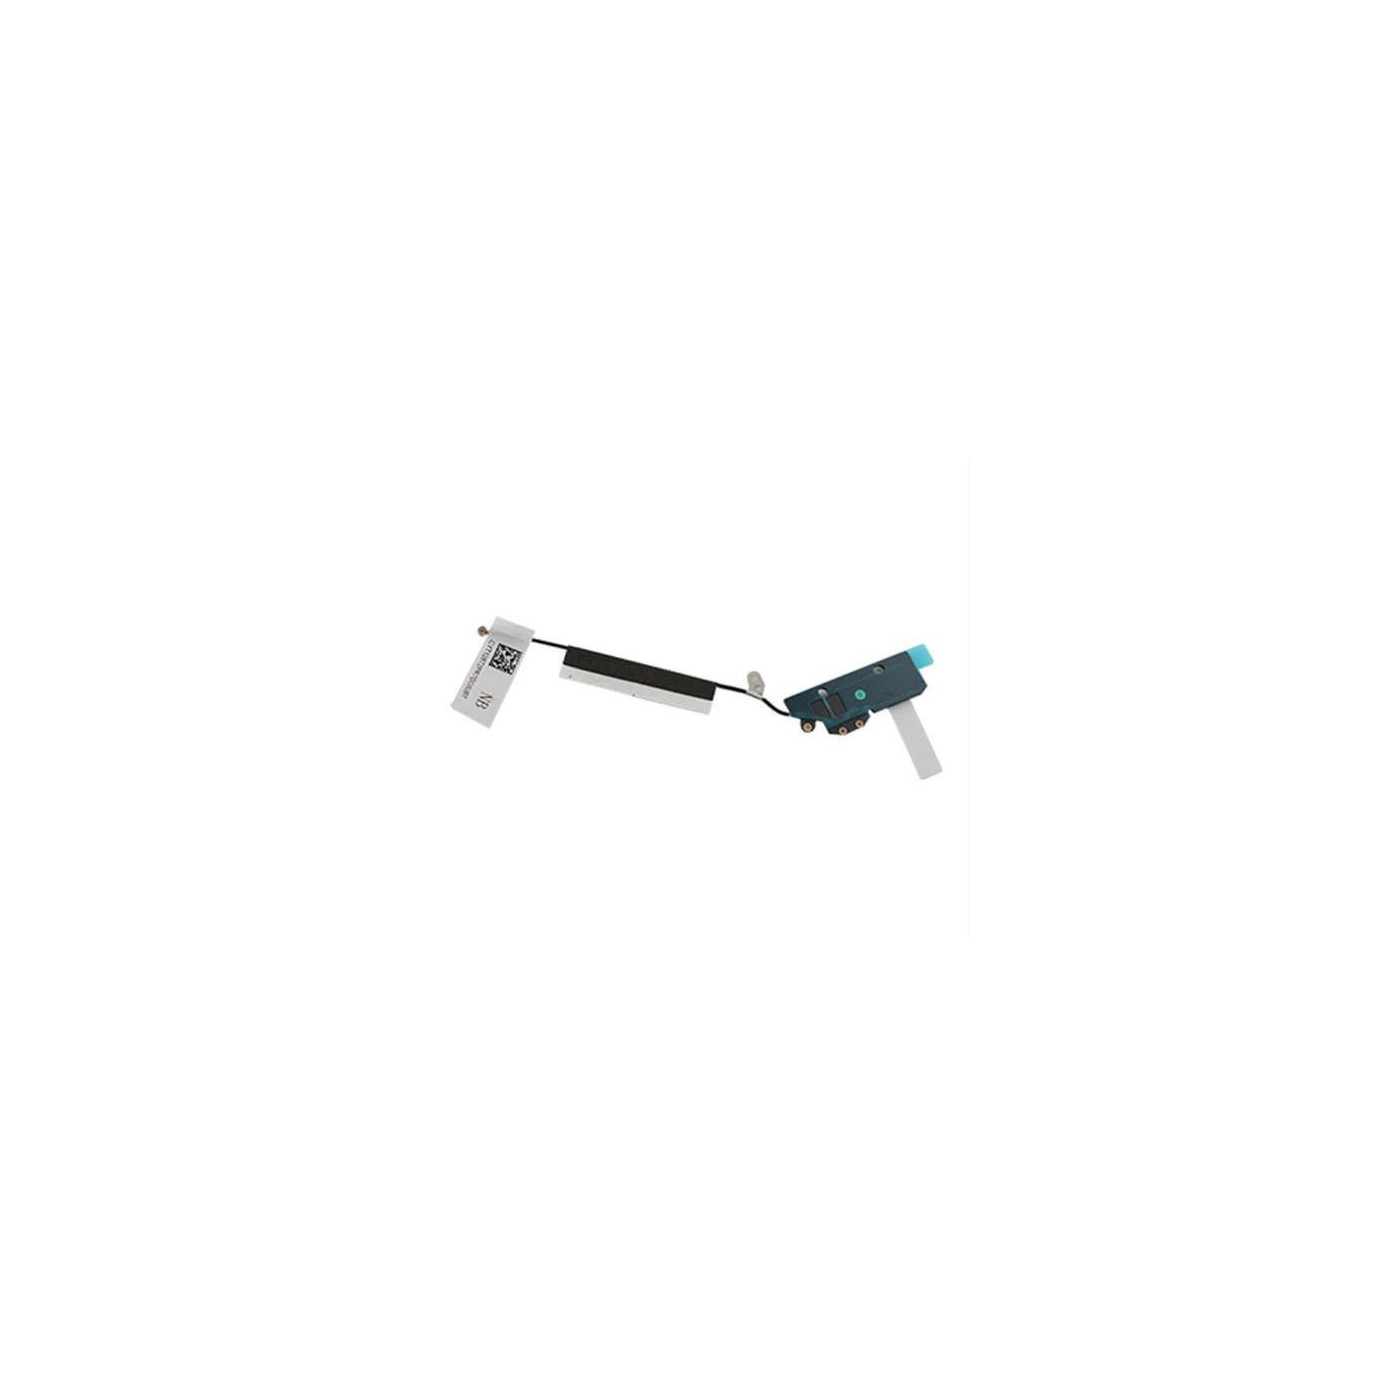 Bluetooth Wifi Antenne für Apple Ipad 2 Flexkabel Ersatz